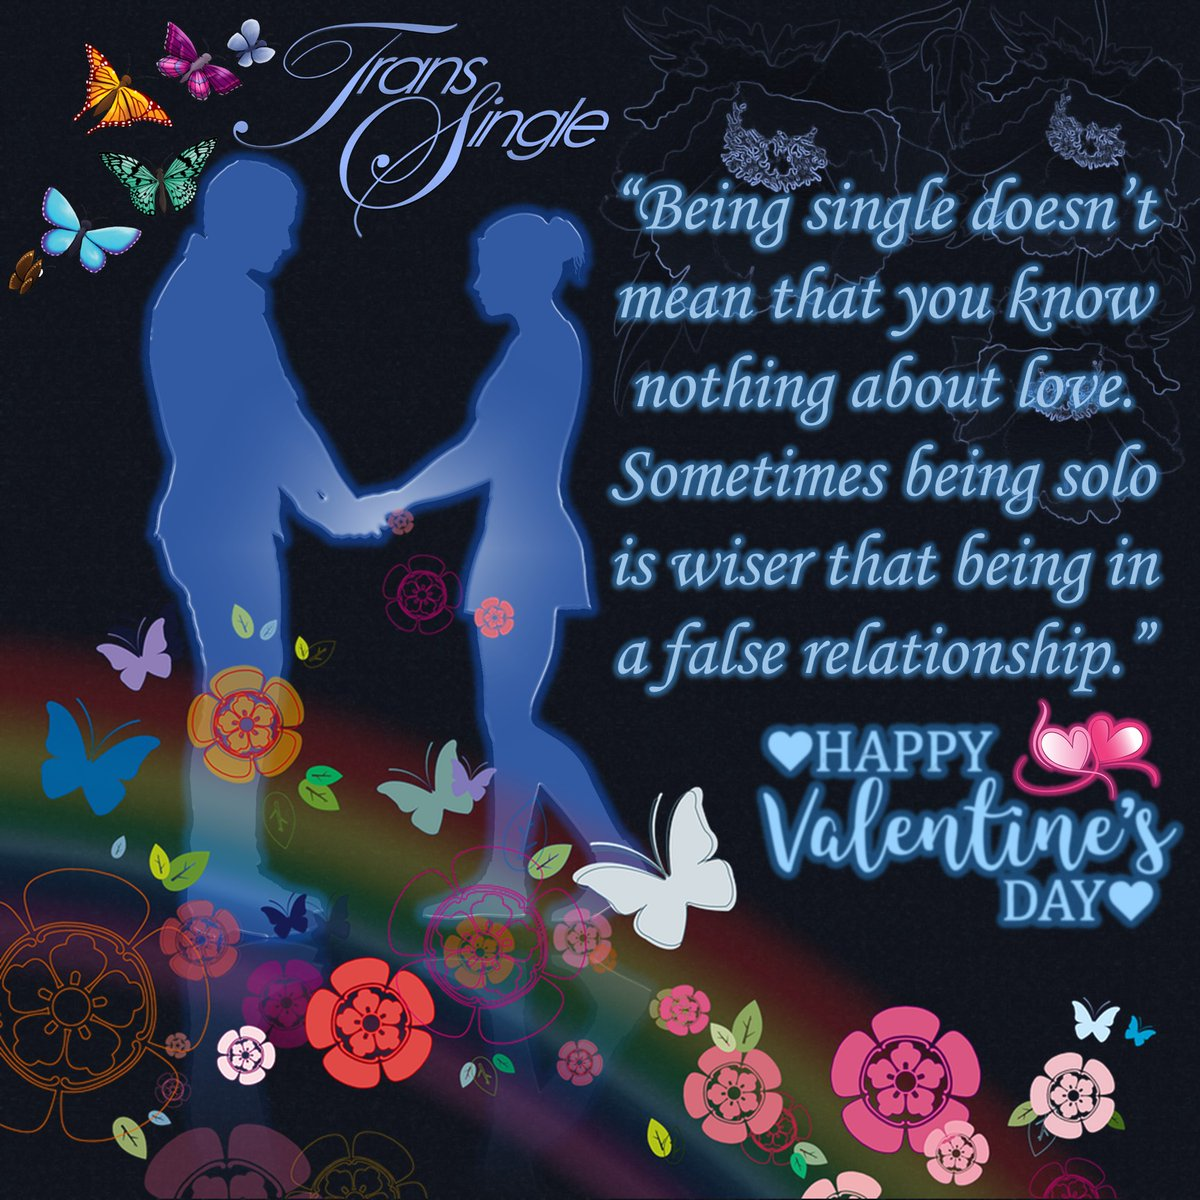 How did it happen that their lips came together 💏? How does it happen that birds sing, that snow melts, that the rose unfolds, that the dawn whitens behind the stark shapes of trees on the quivering summit of the hill? A kiss and all was said. 💖💝❤️ #HappyValentinesDay ❤️💝💖